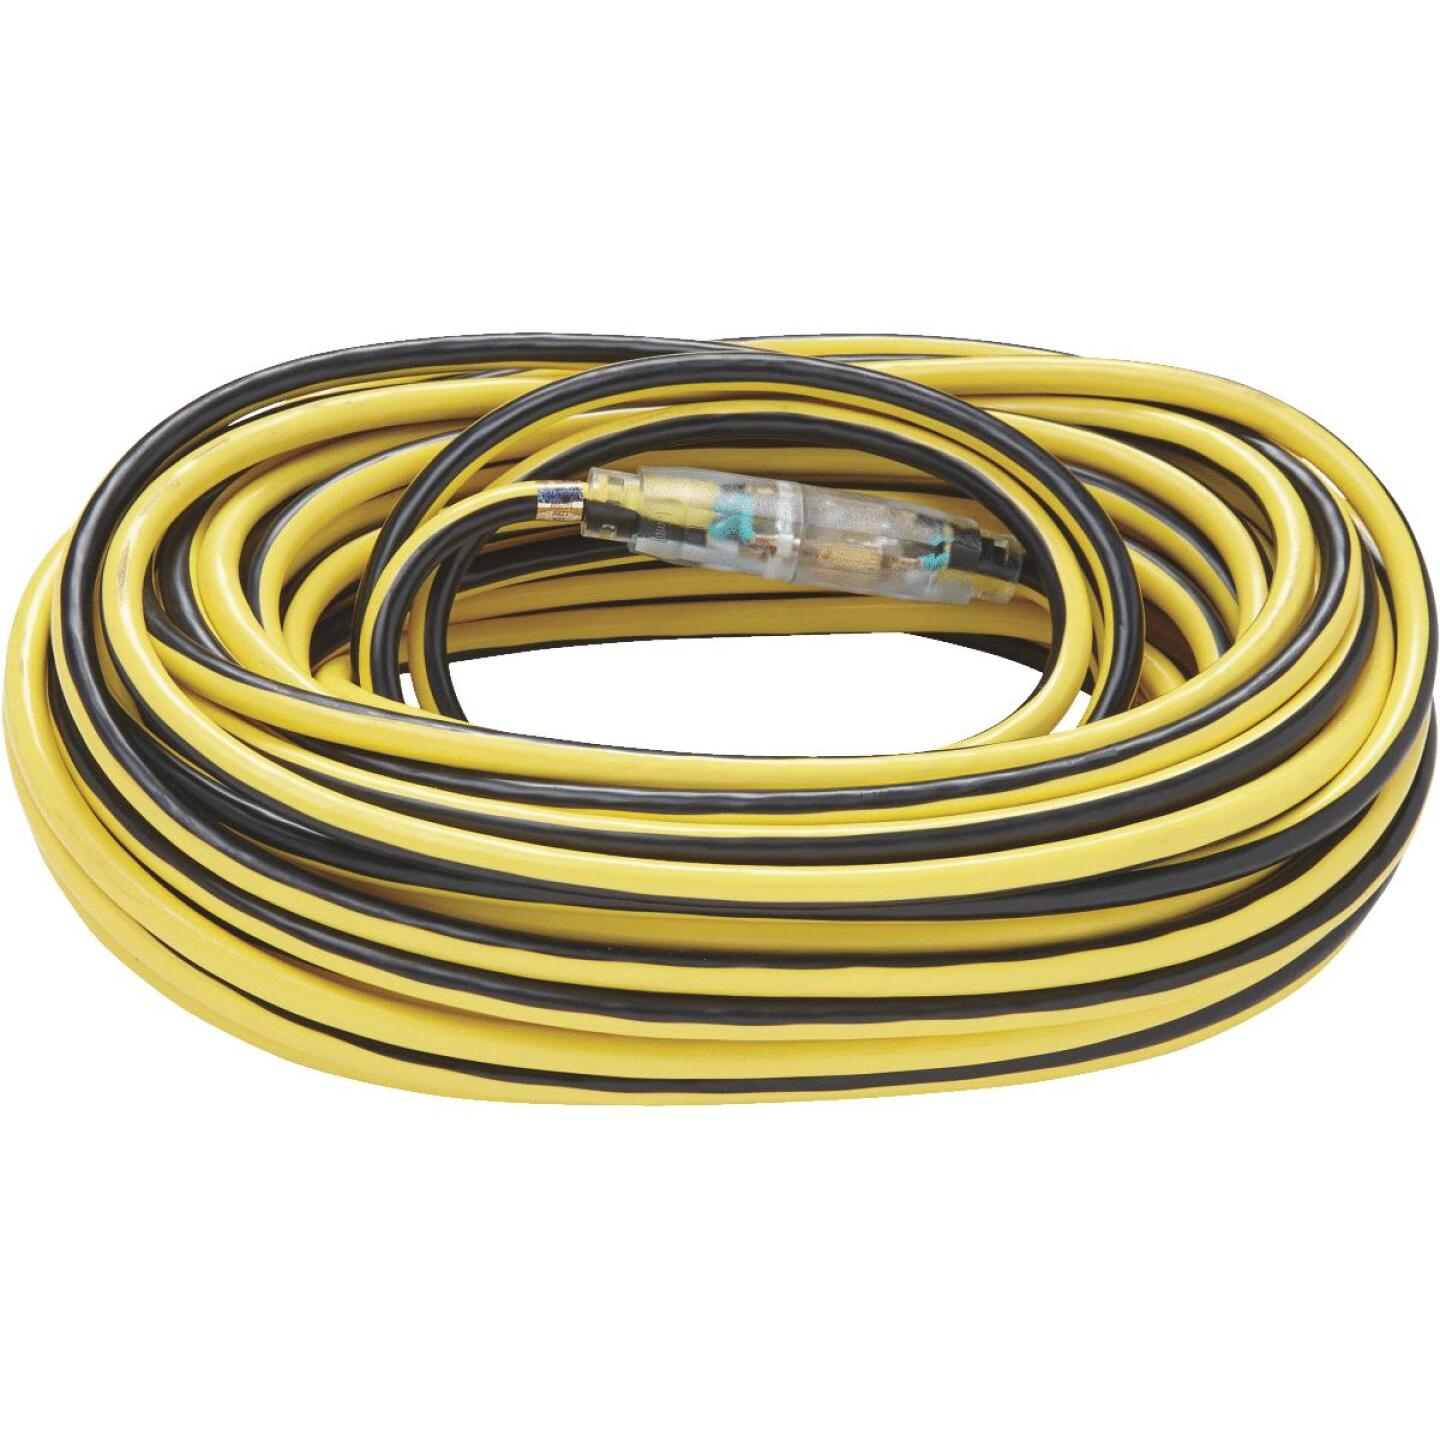 Do it Best 100 Ft. 12/3 Extra Heavy-Duty Contractor Extension Cord Image 2